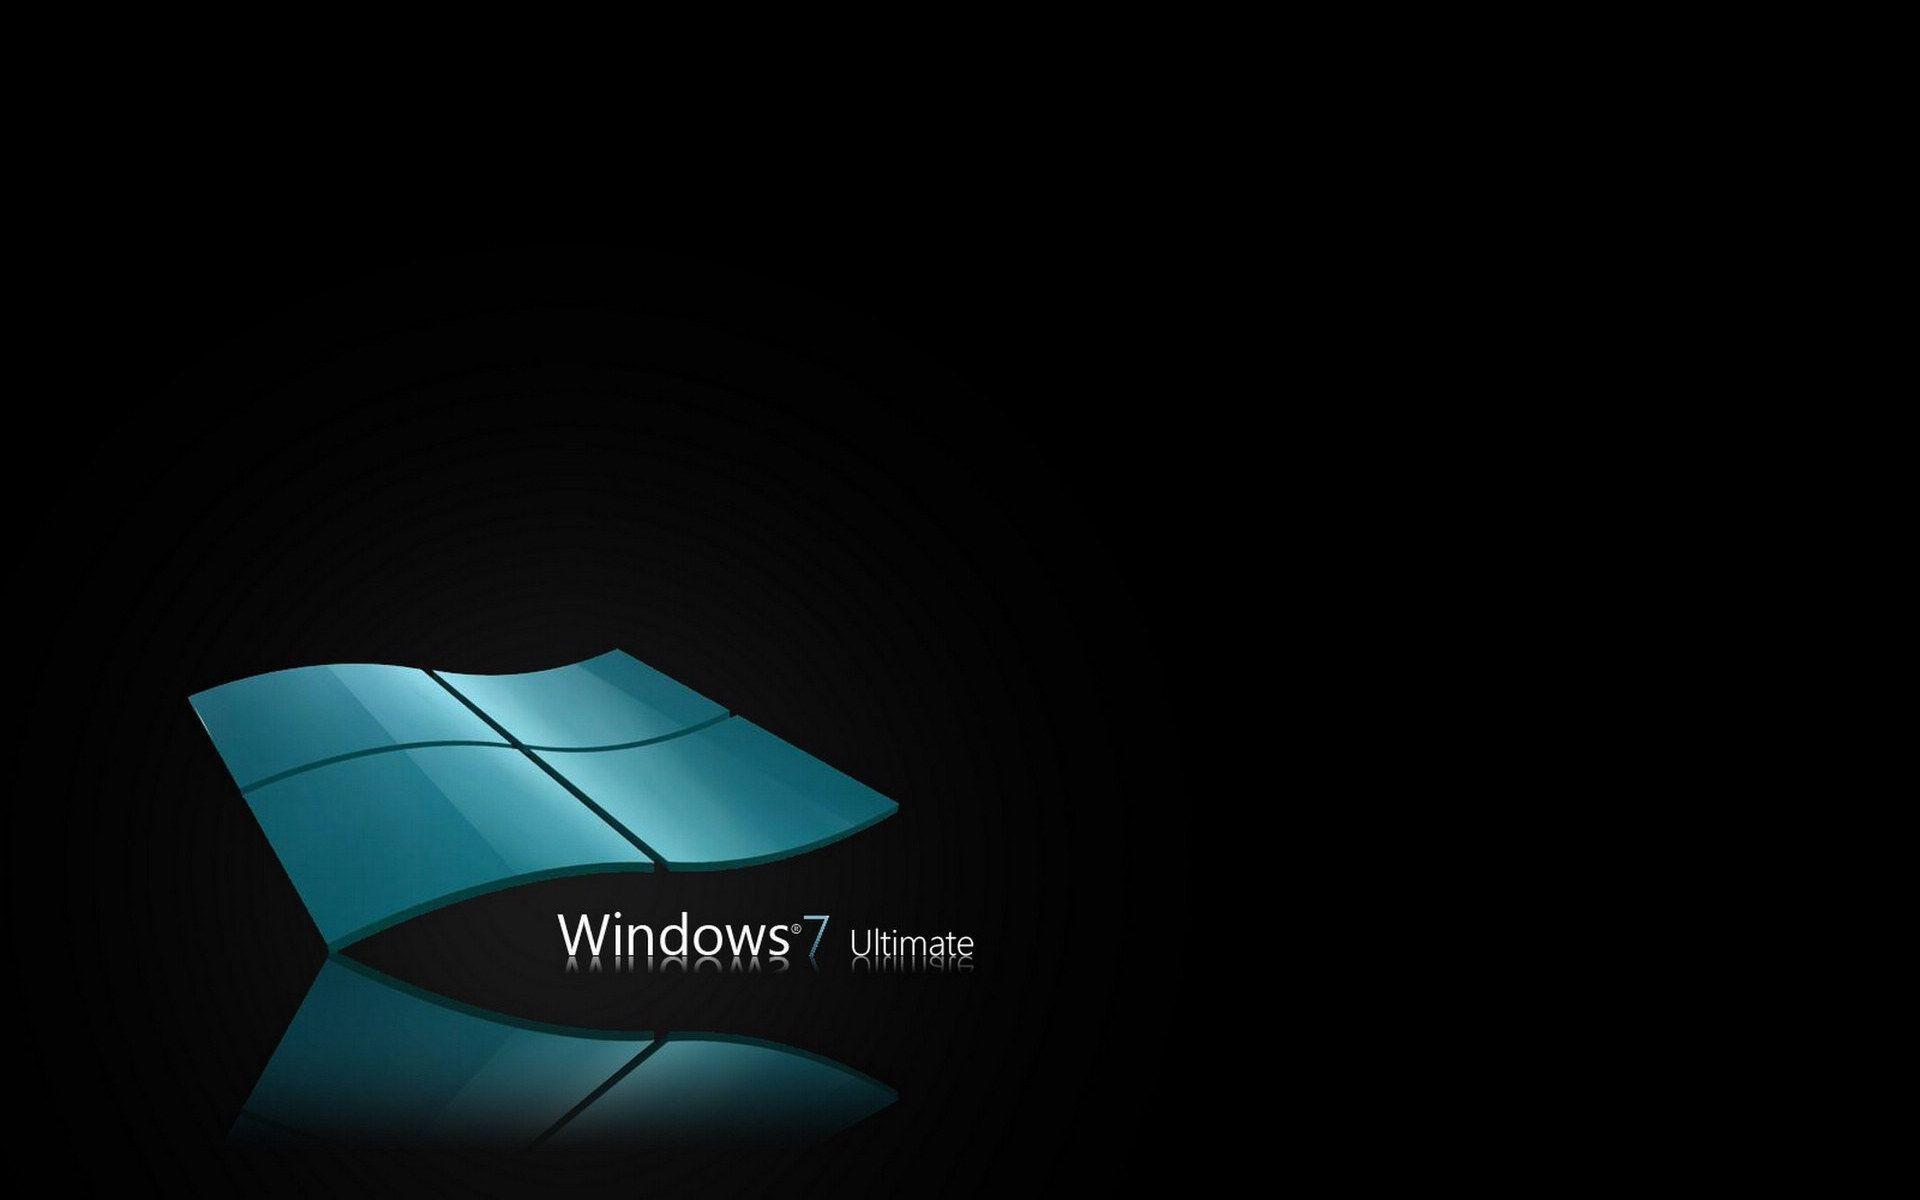 Windows 7 ultimate desktop backgrounds wallpaper cave for Window 7 ultimate